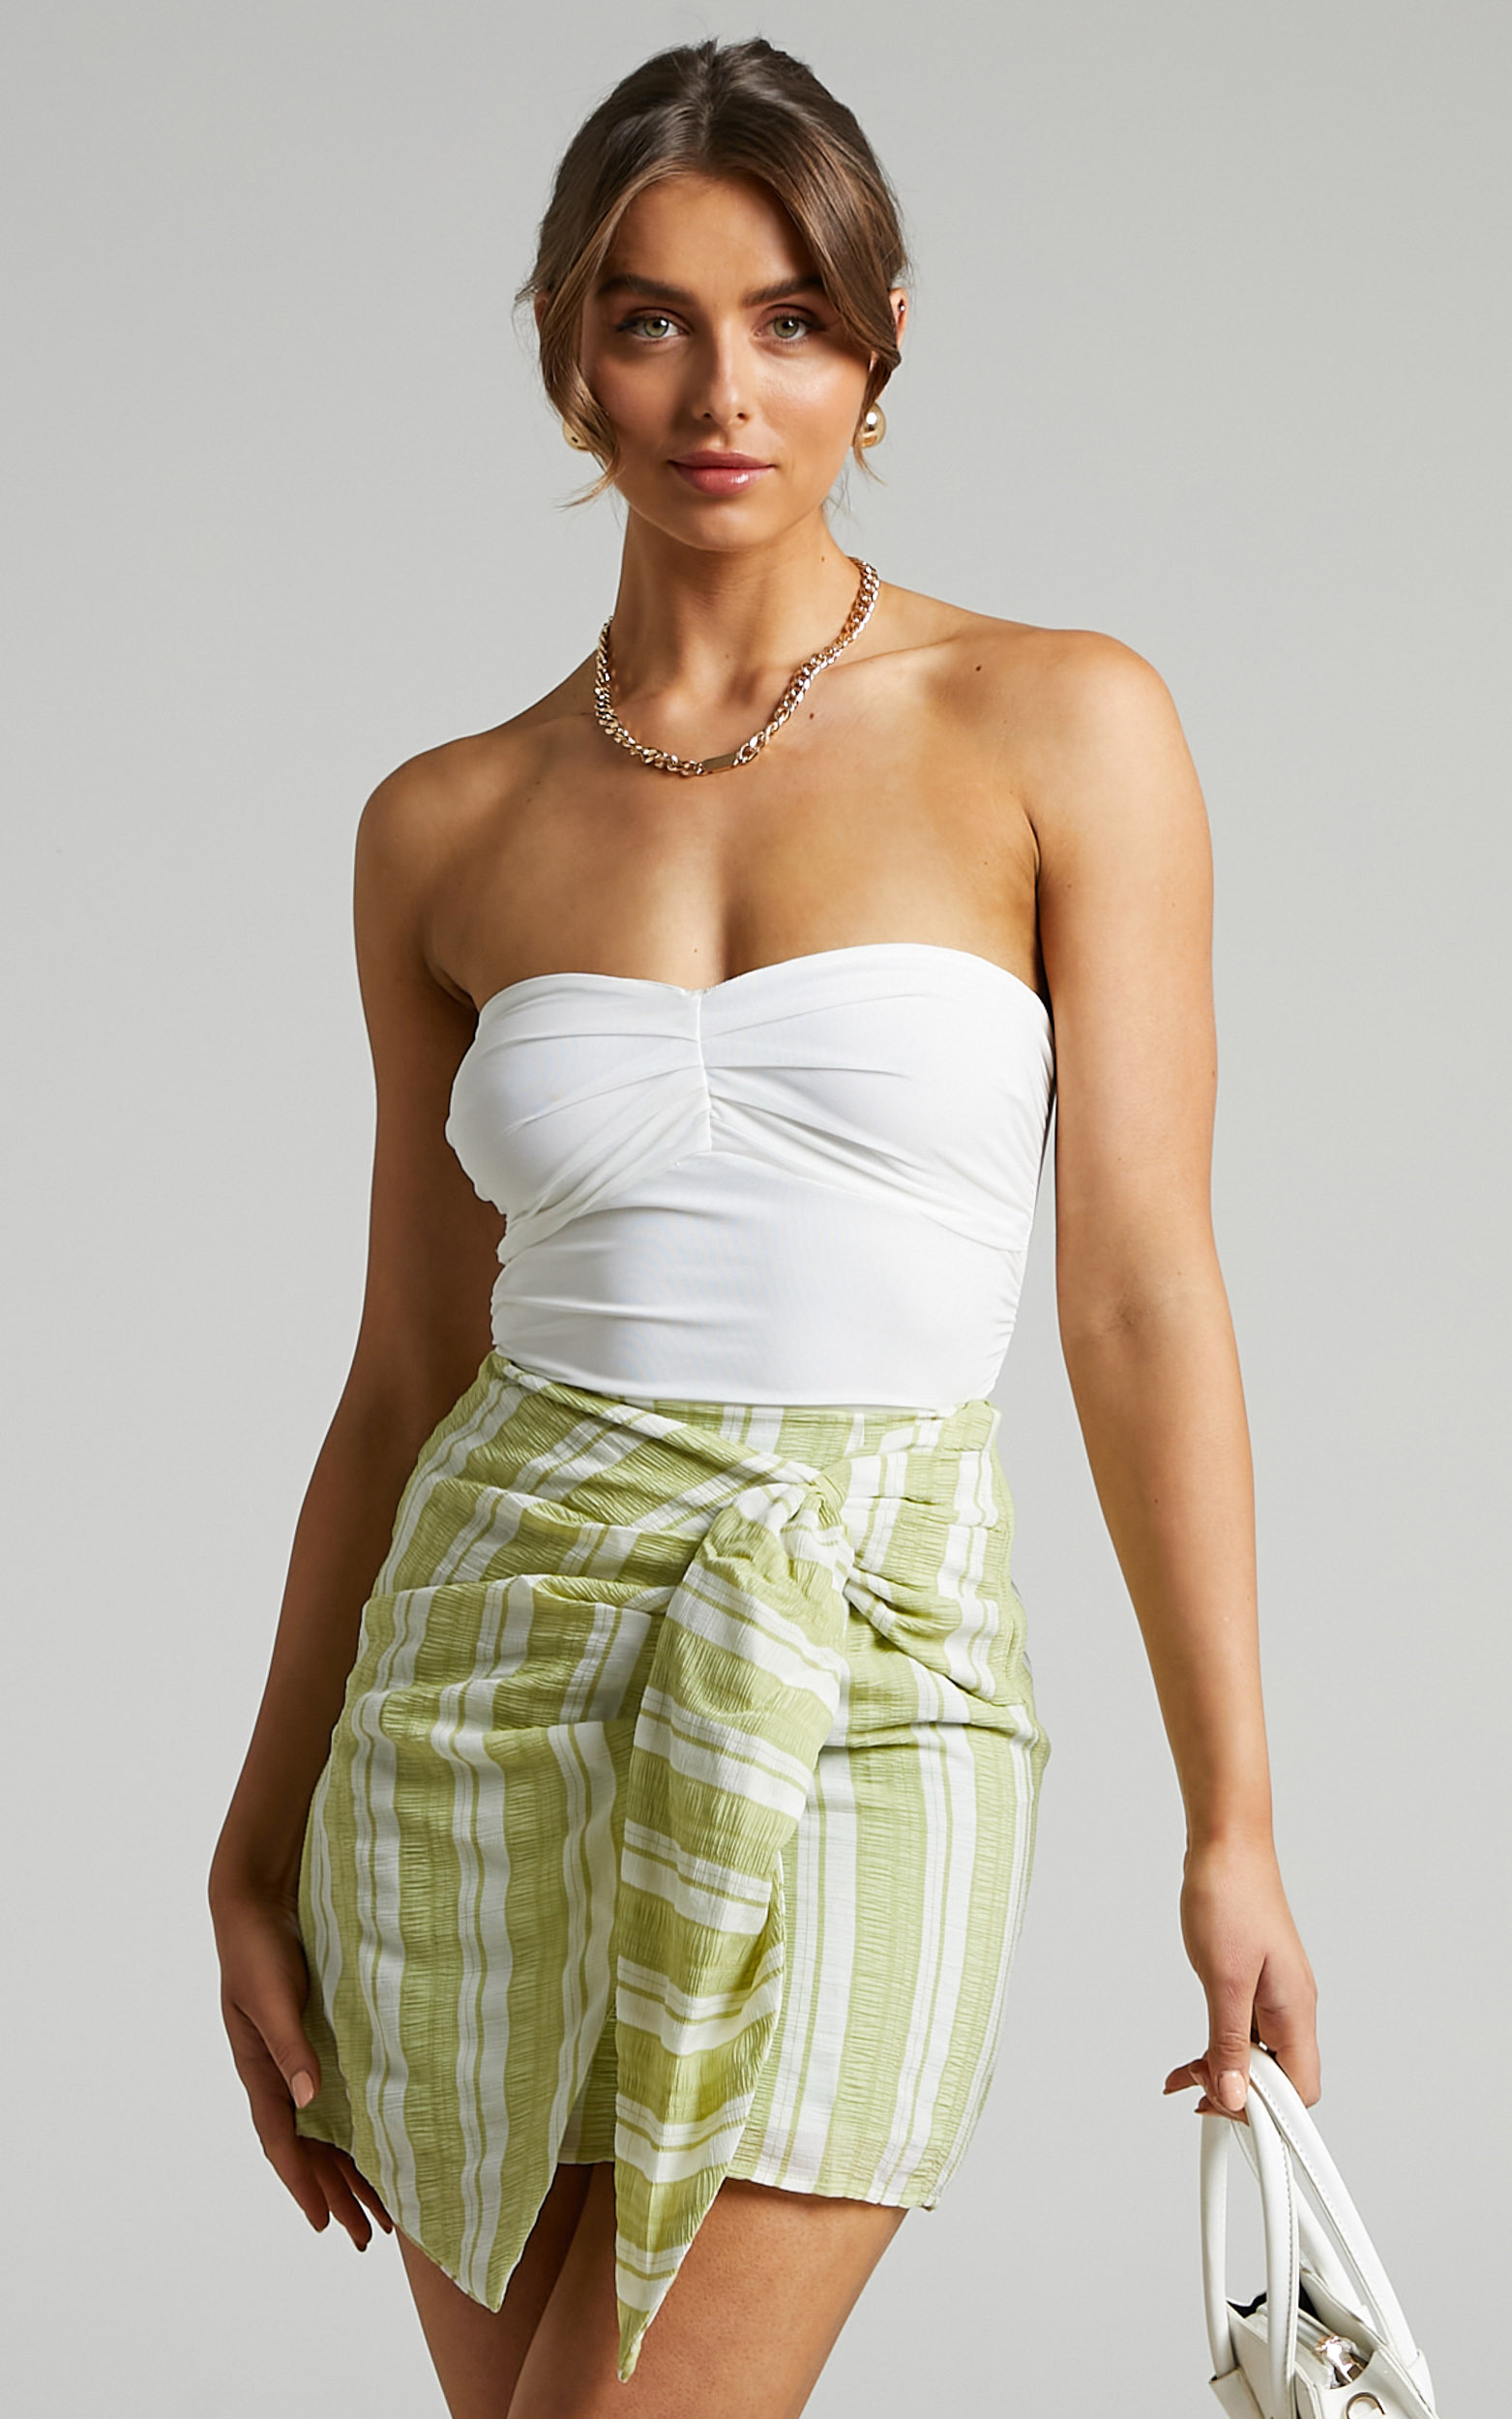 Madison Front Tie Mini Skirt in Green Stripe - 06, GRN1, hi-res image number null